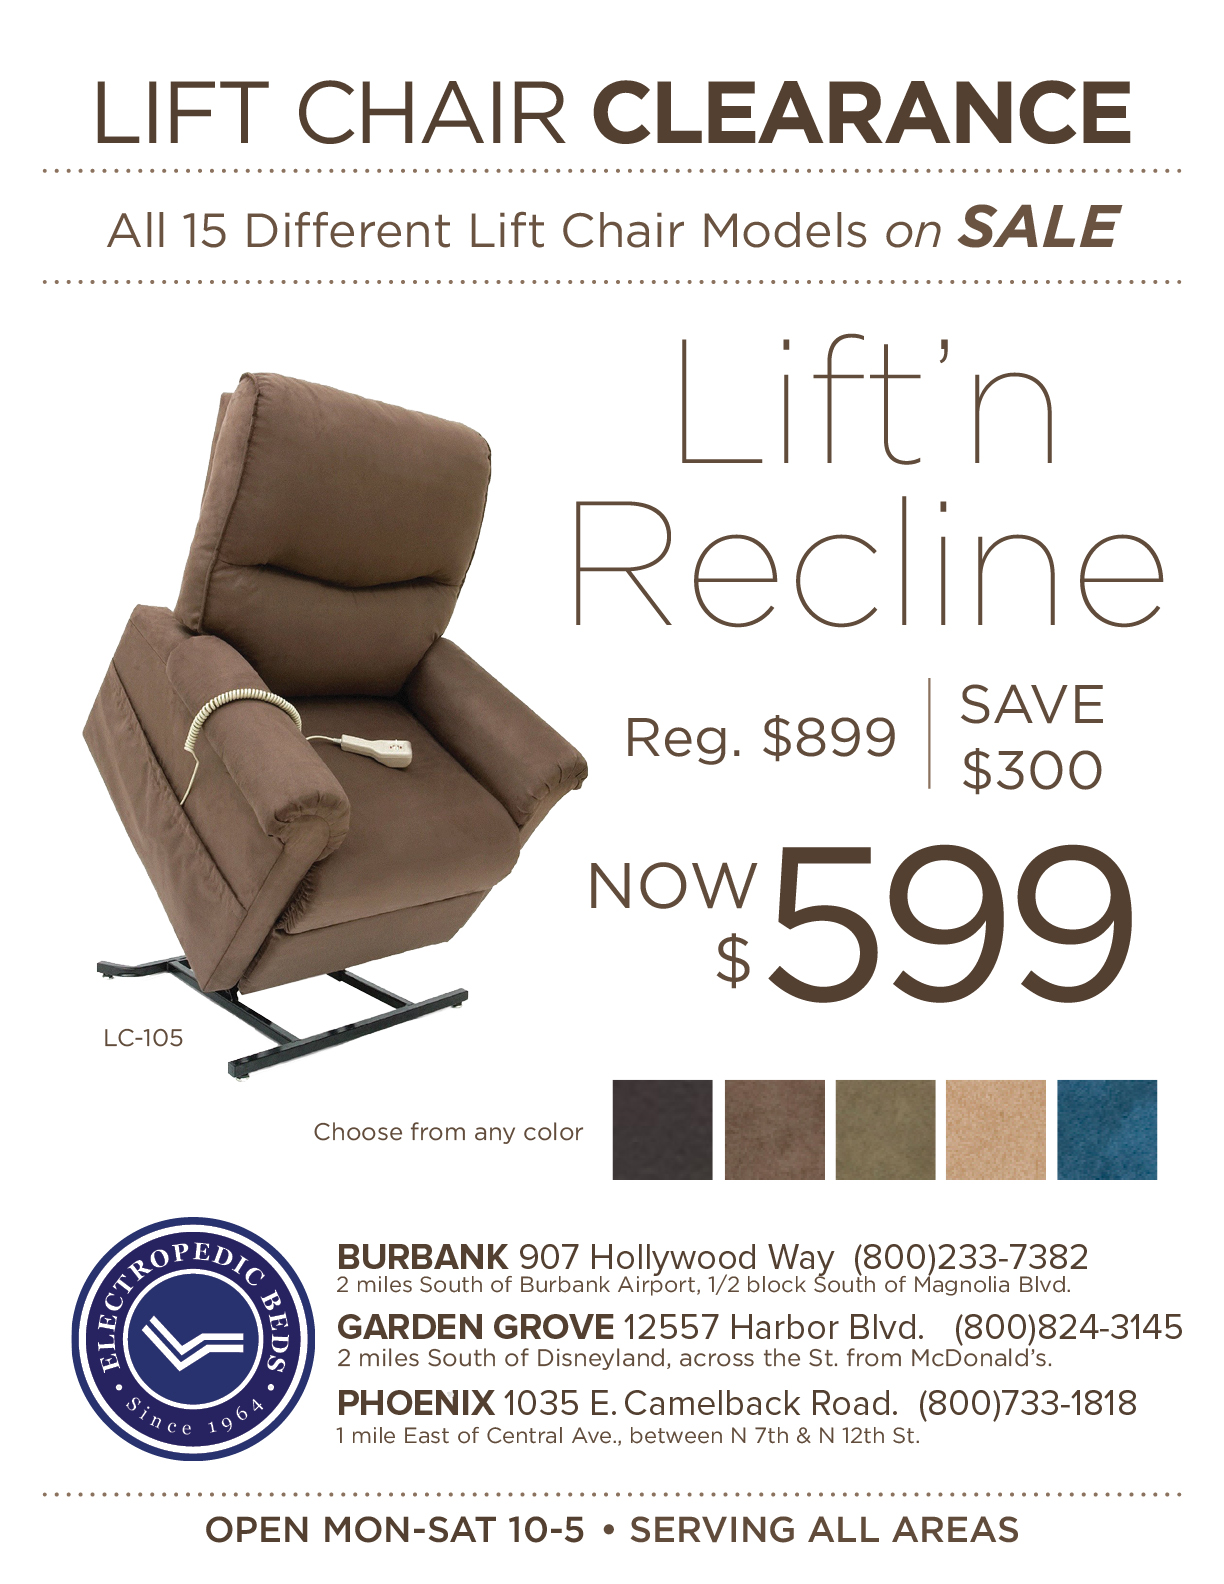 LiftChairs PHOENIX az recliner seat pride lift chair salel price